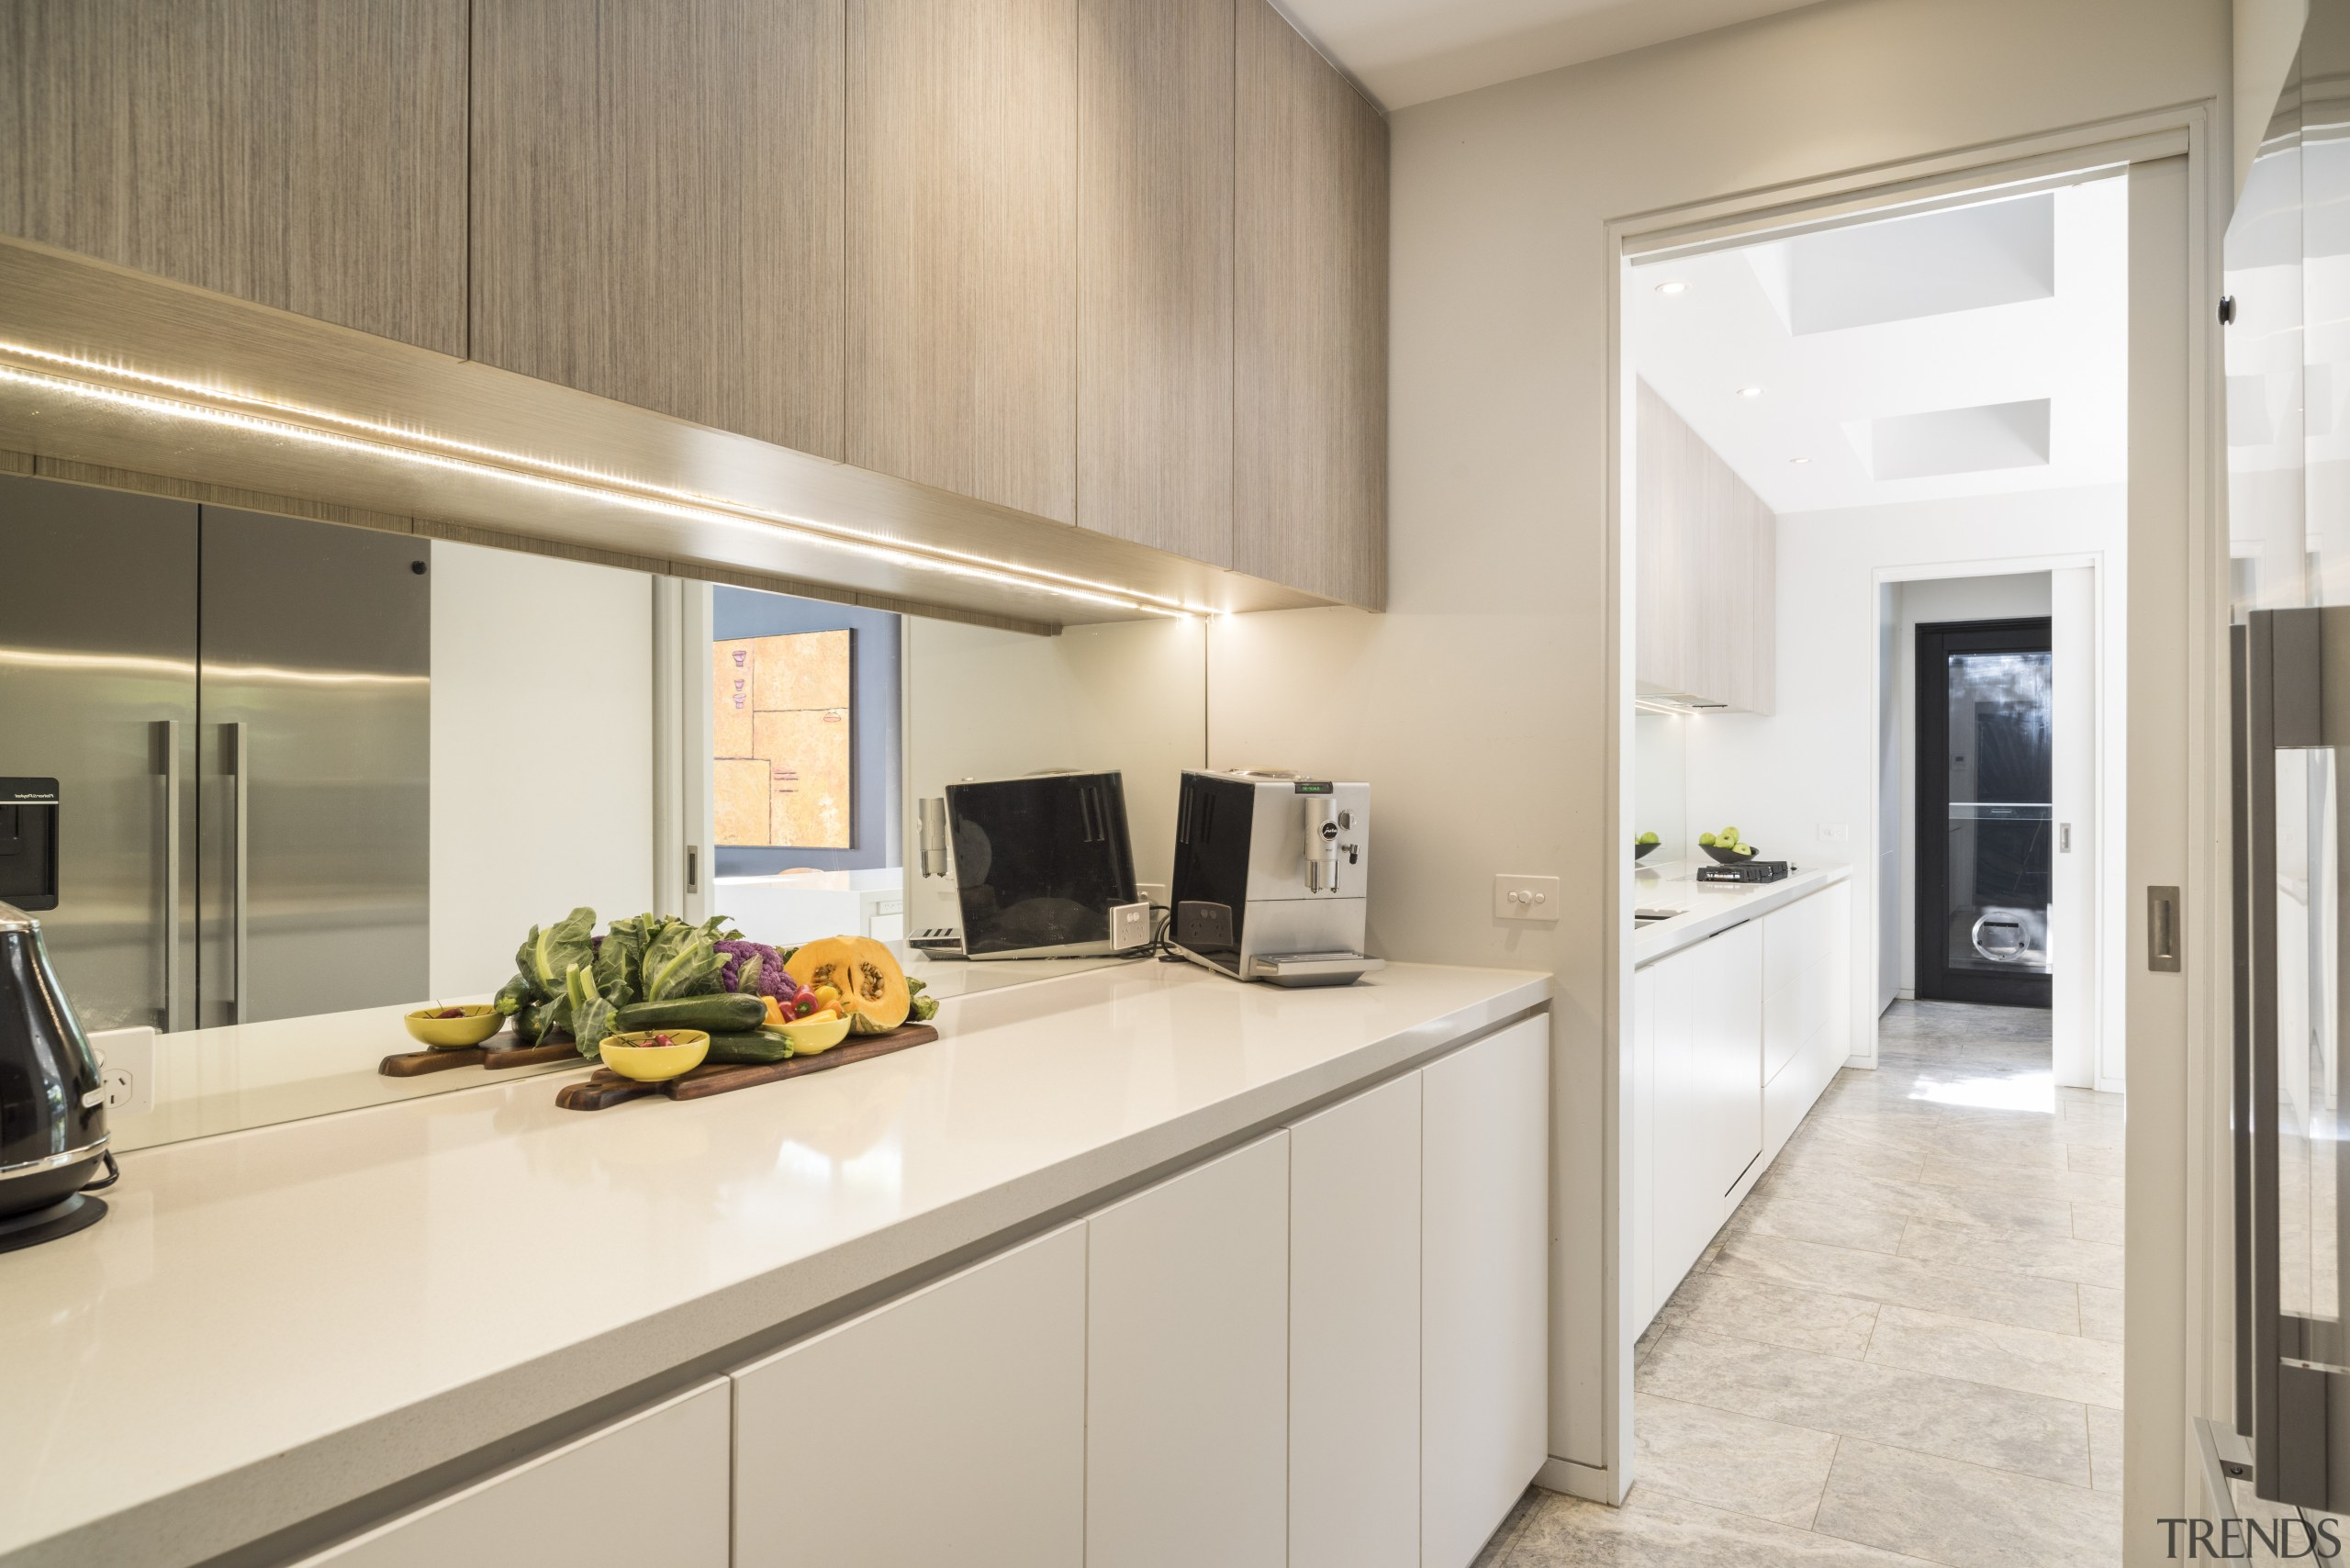 Run of rooms  utilising every inch of cabinetry, countertop, cuisine classique, interior design, kitchen, real estate, white